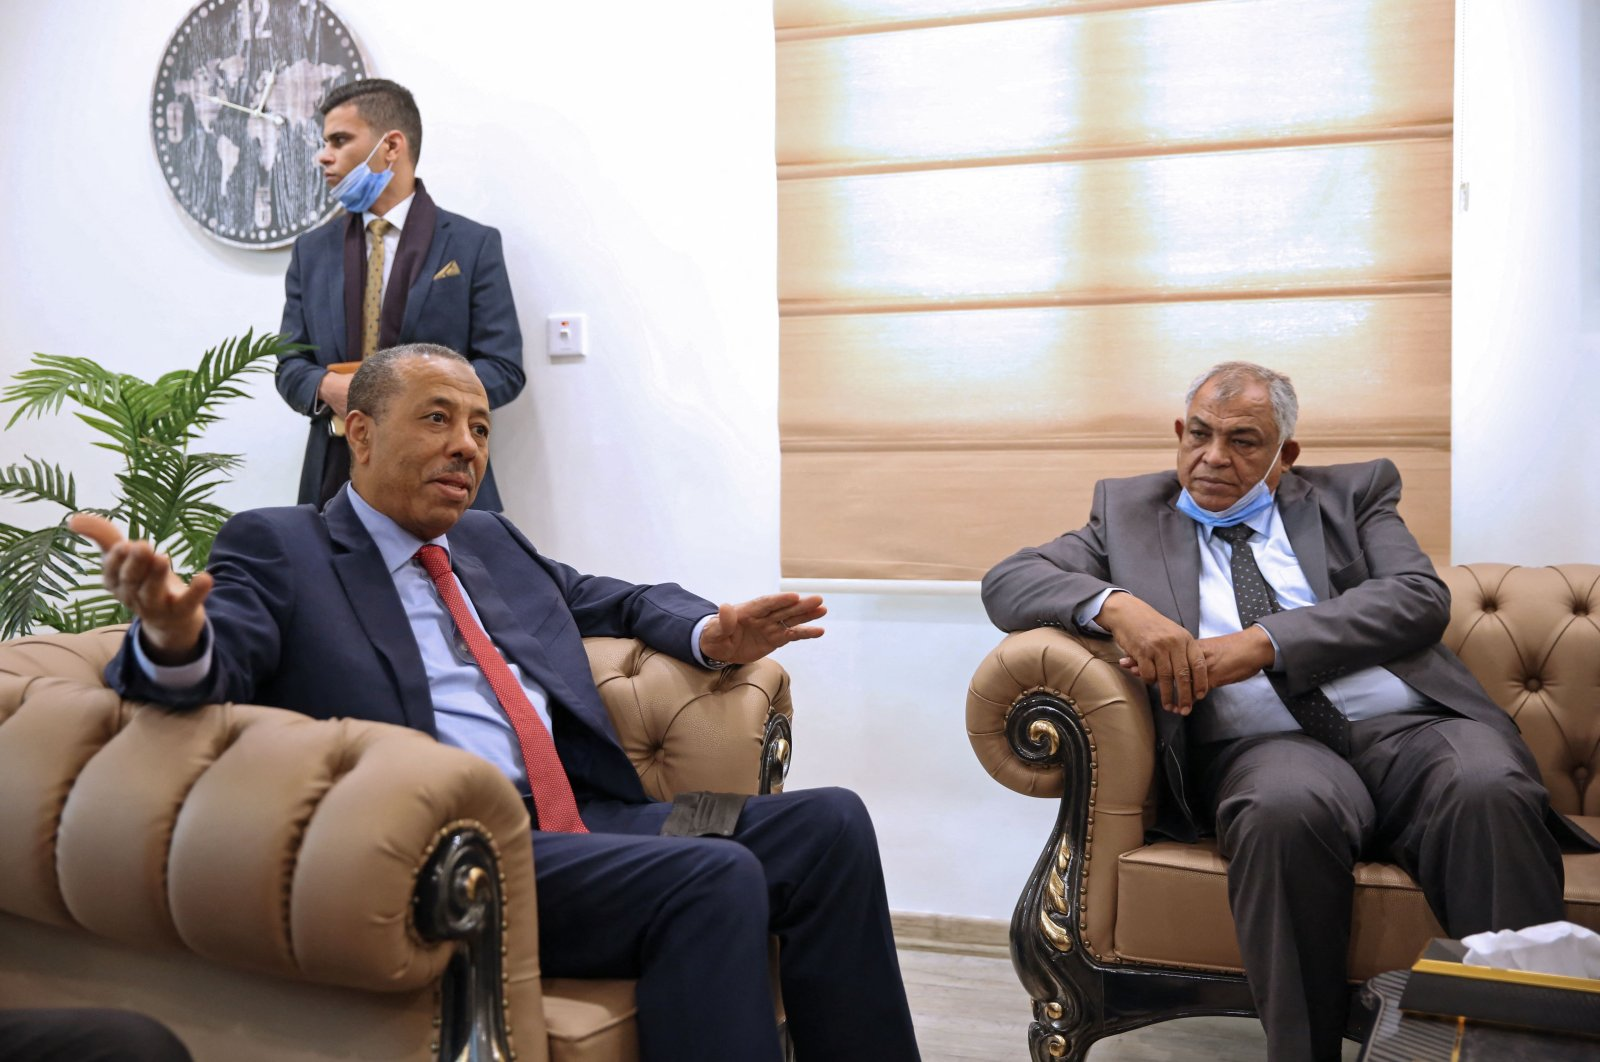 Libya's Deputy Prime Minister in the national unity government, Hussein Attiya al-Gotrani (R), listens to Abdallah al-Thani (L), the former head of the pro-Haftar eastern administration during a handover ceremony in Benghazi, Libya, March 23, 2021. (AFP Photo)